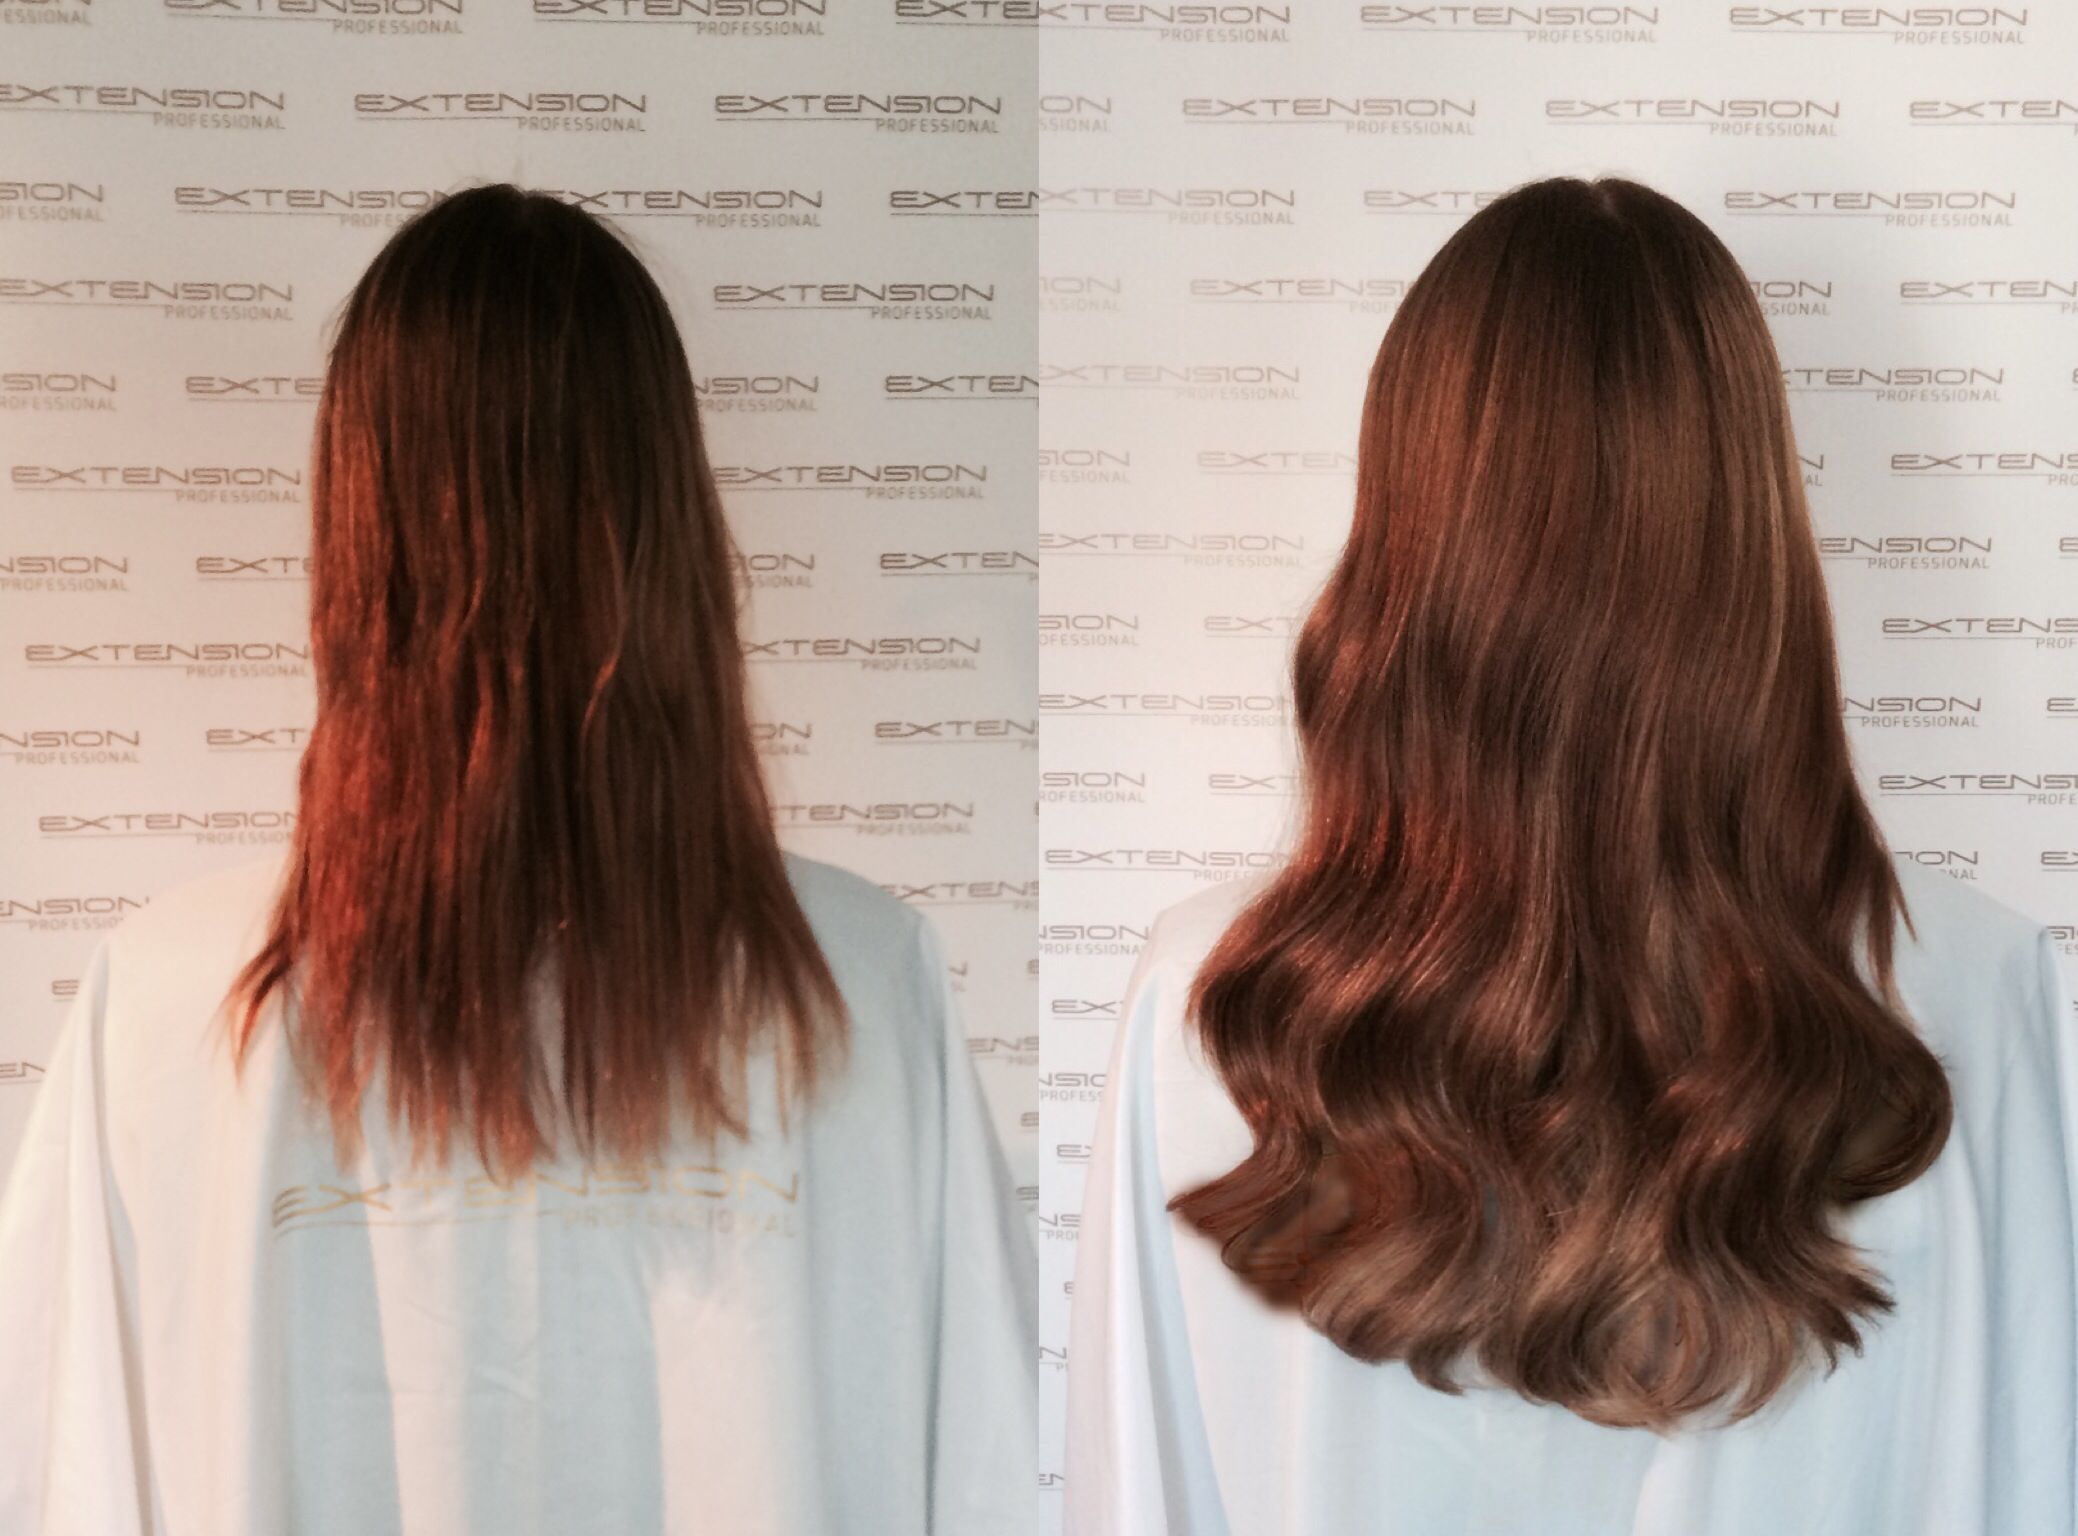 Todays Transformation Extension Professional Lengths Full Hair